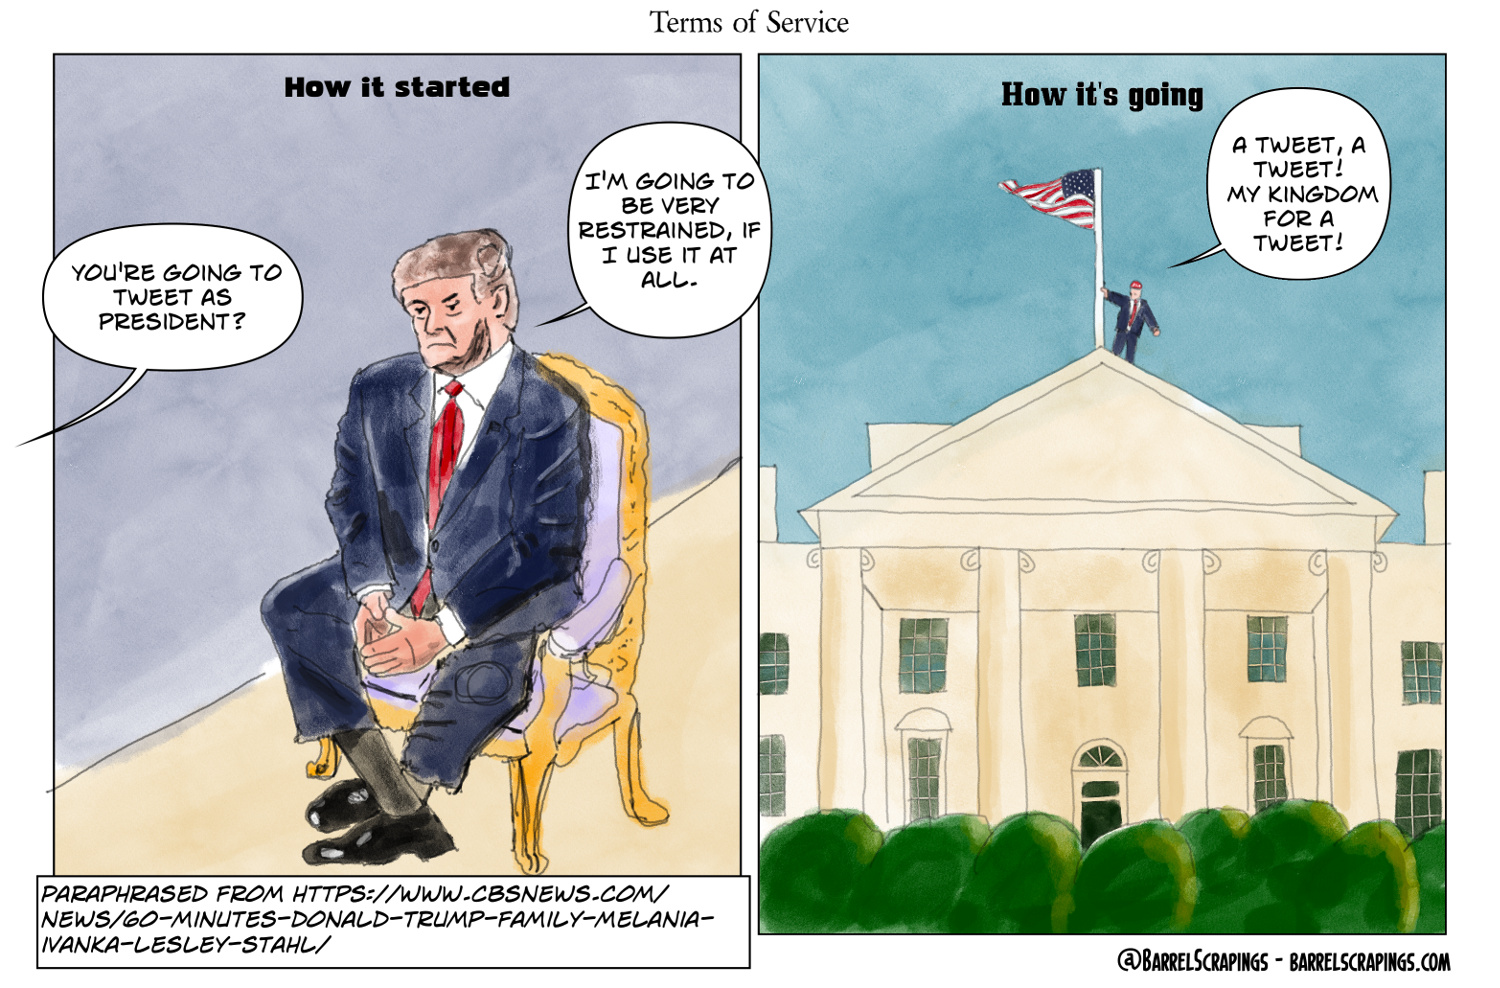 "Two panel comic. Panel 1: Label at top: ""How it started"". Trump seated in ornate gold chair. Off-screen text bubble from interviewer: You're going to tweet as president? Trump's response: ""I'm going to be very restrained, if I use it at all. Comment at the bottom: Paraphrased from https://www.cbsnews.com/news/60-minutes-donald-trump-family-melania-ivanka-lesley-stahl/ . Panel 2: Label at top"" How it's going. Trump standing on top of the white house grasping an American flag, saying ""A tweet, a tweet! My kingdom for a tweet!"""